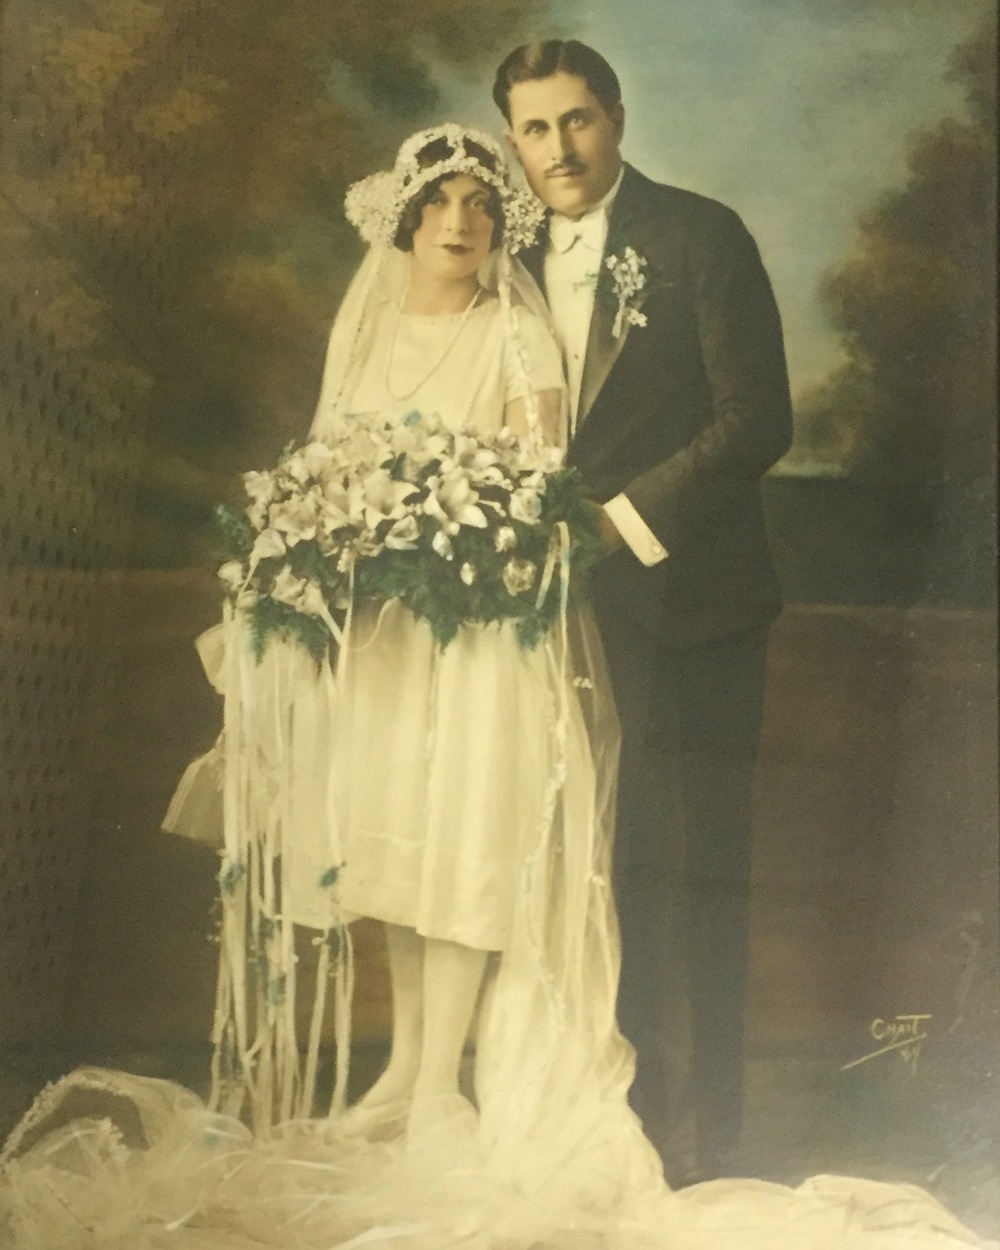 My Italian grandparents on their wedding day.